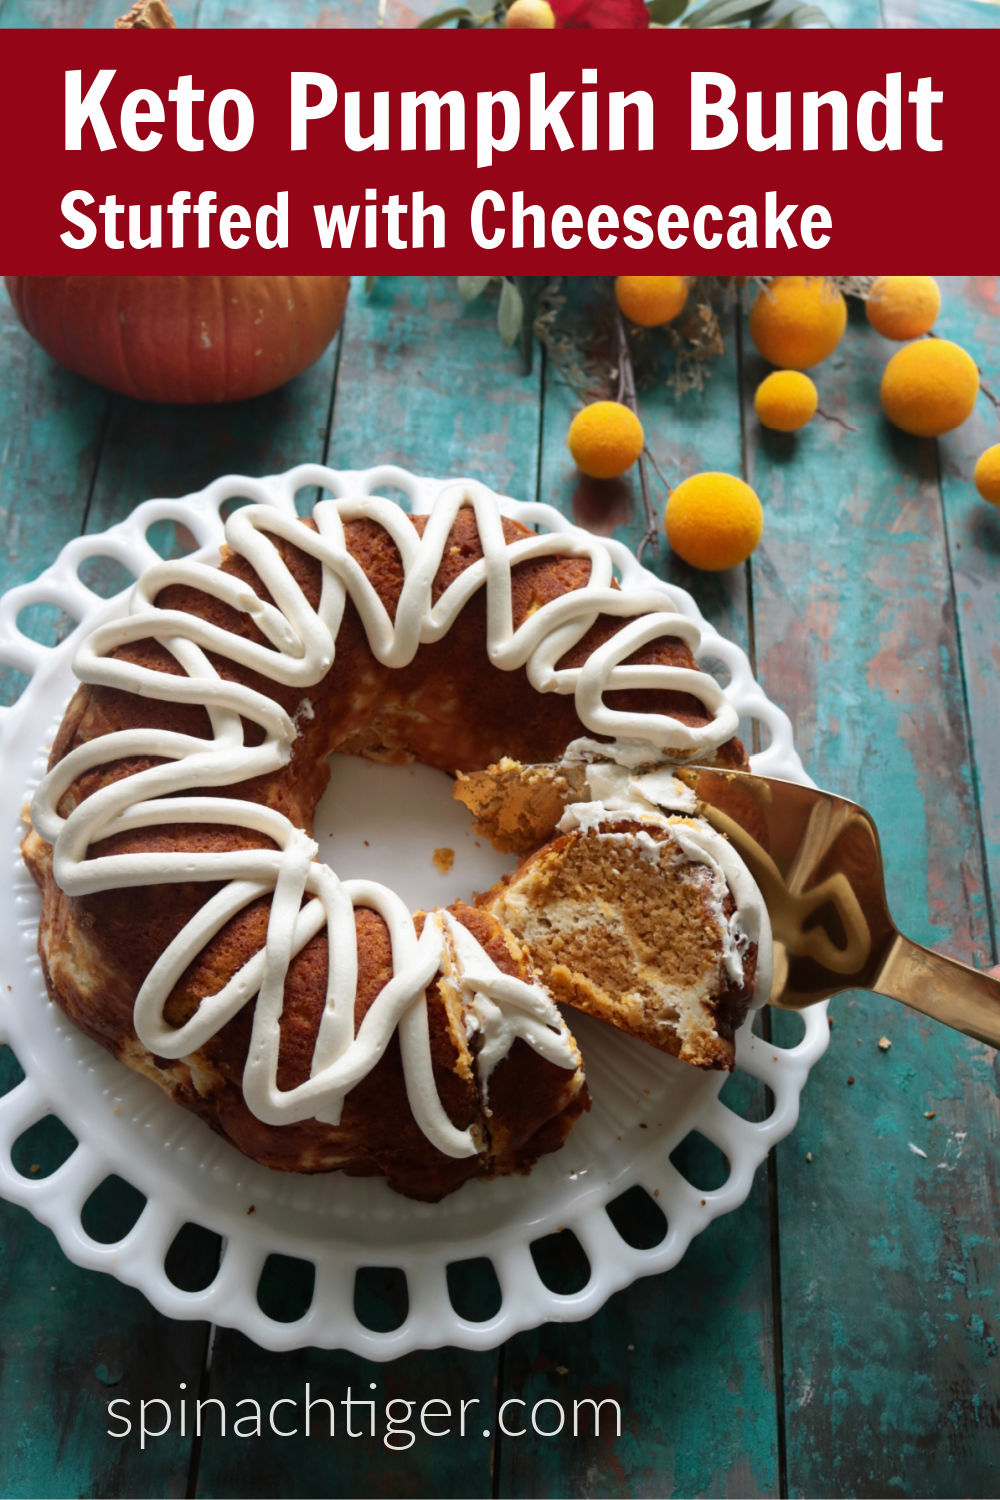 Low Carb Pumpkin Bundt Cake filled with cream cheese. Keto friendly. Tips for how to make a bundt cake and successfully release it. #lowcarbpumpkinbundt #ketopumpkinbundt #spinachtiger #glutenfree via @angelaroberts